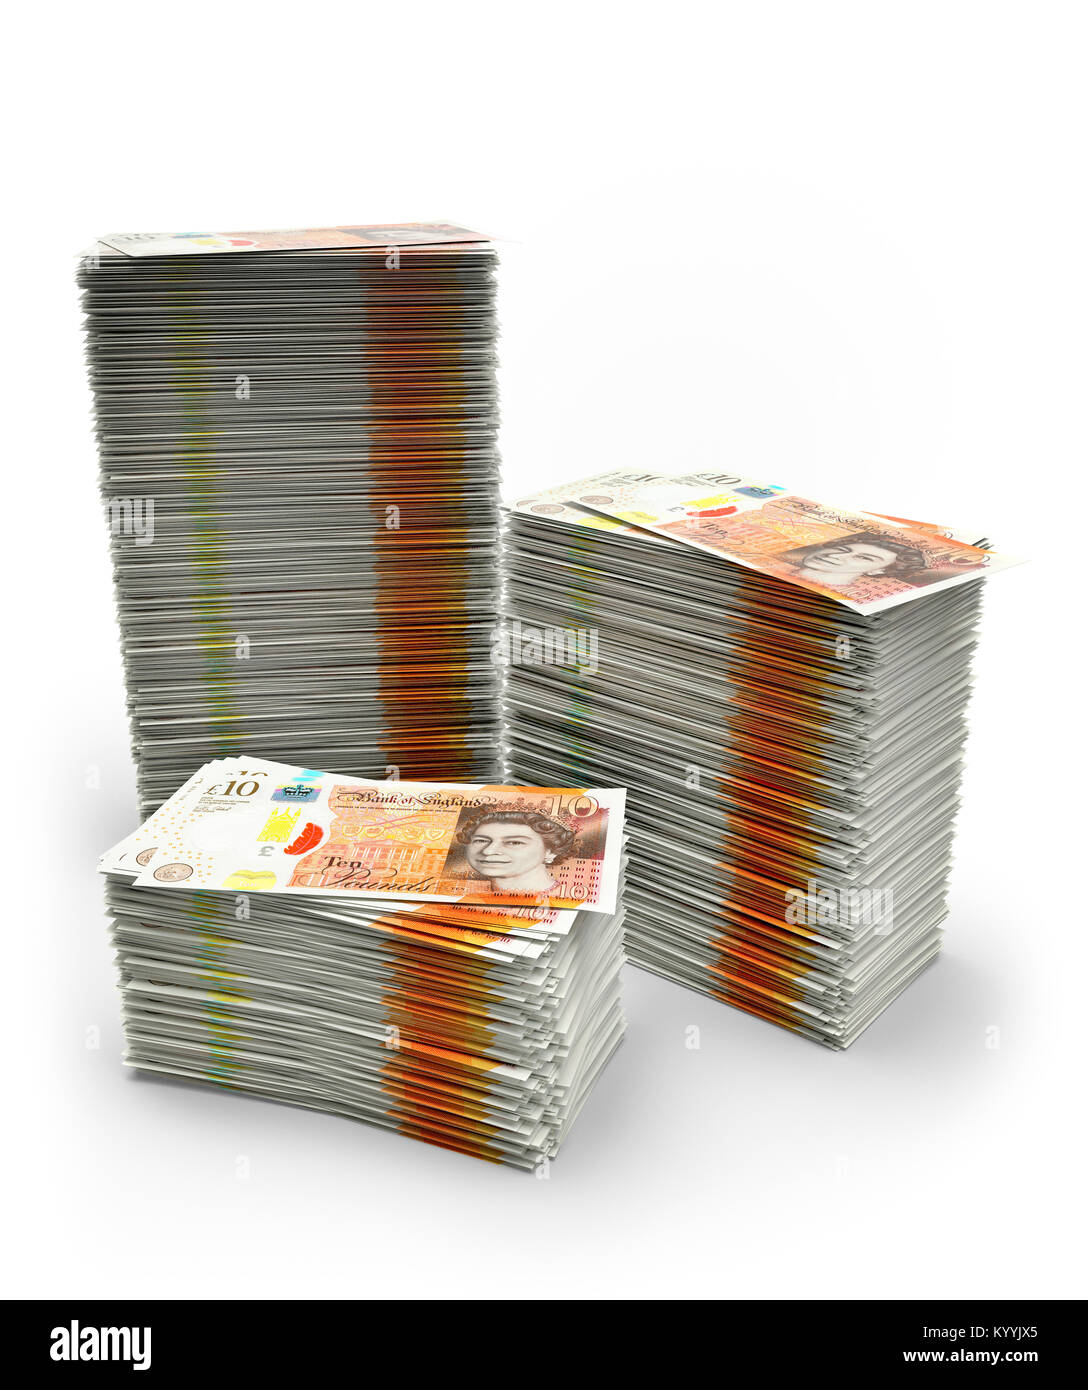 Stacks of ten 10 pound notes Sterling on a white background illustrating saving or debt - new design 2017 - Stock Image